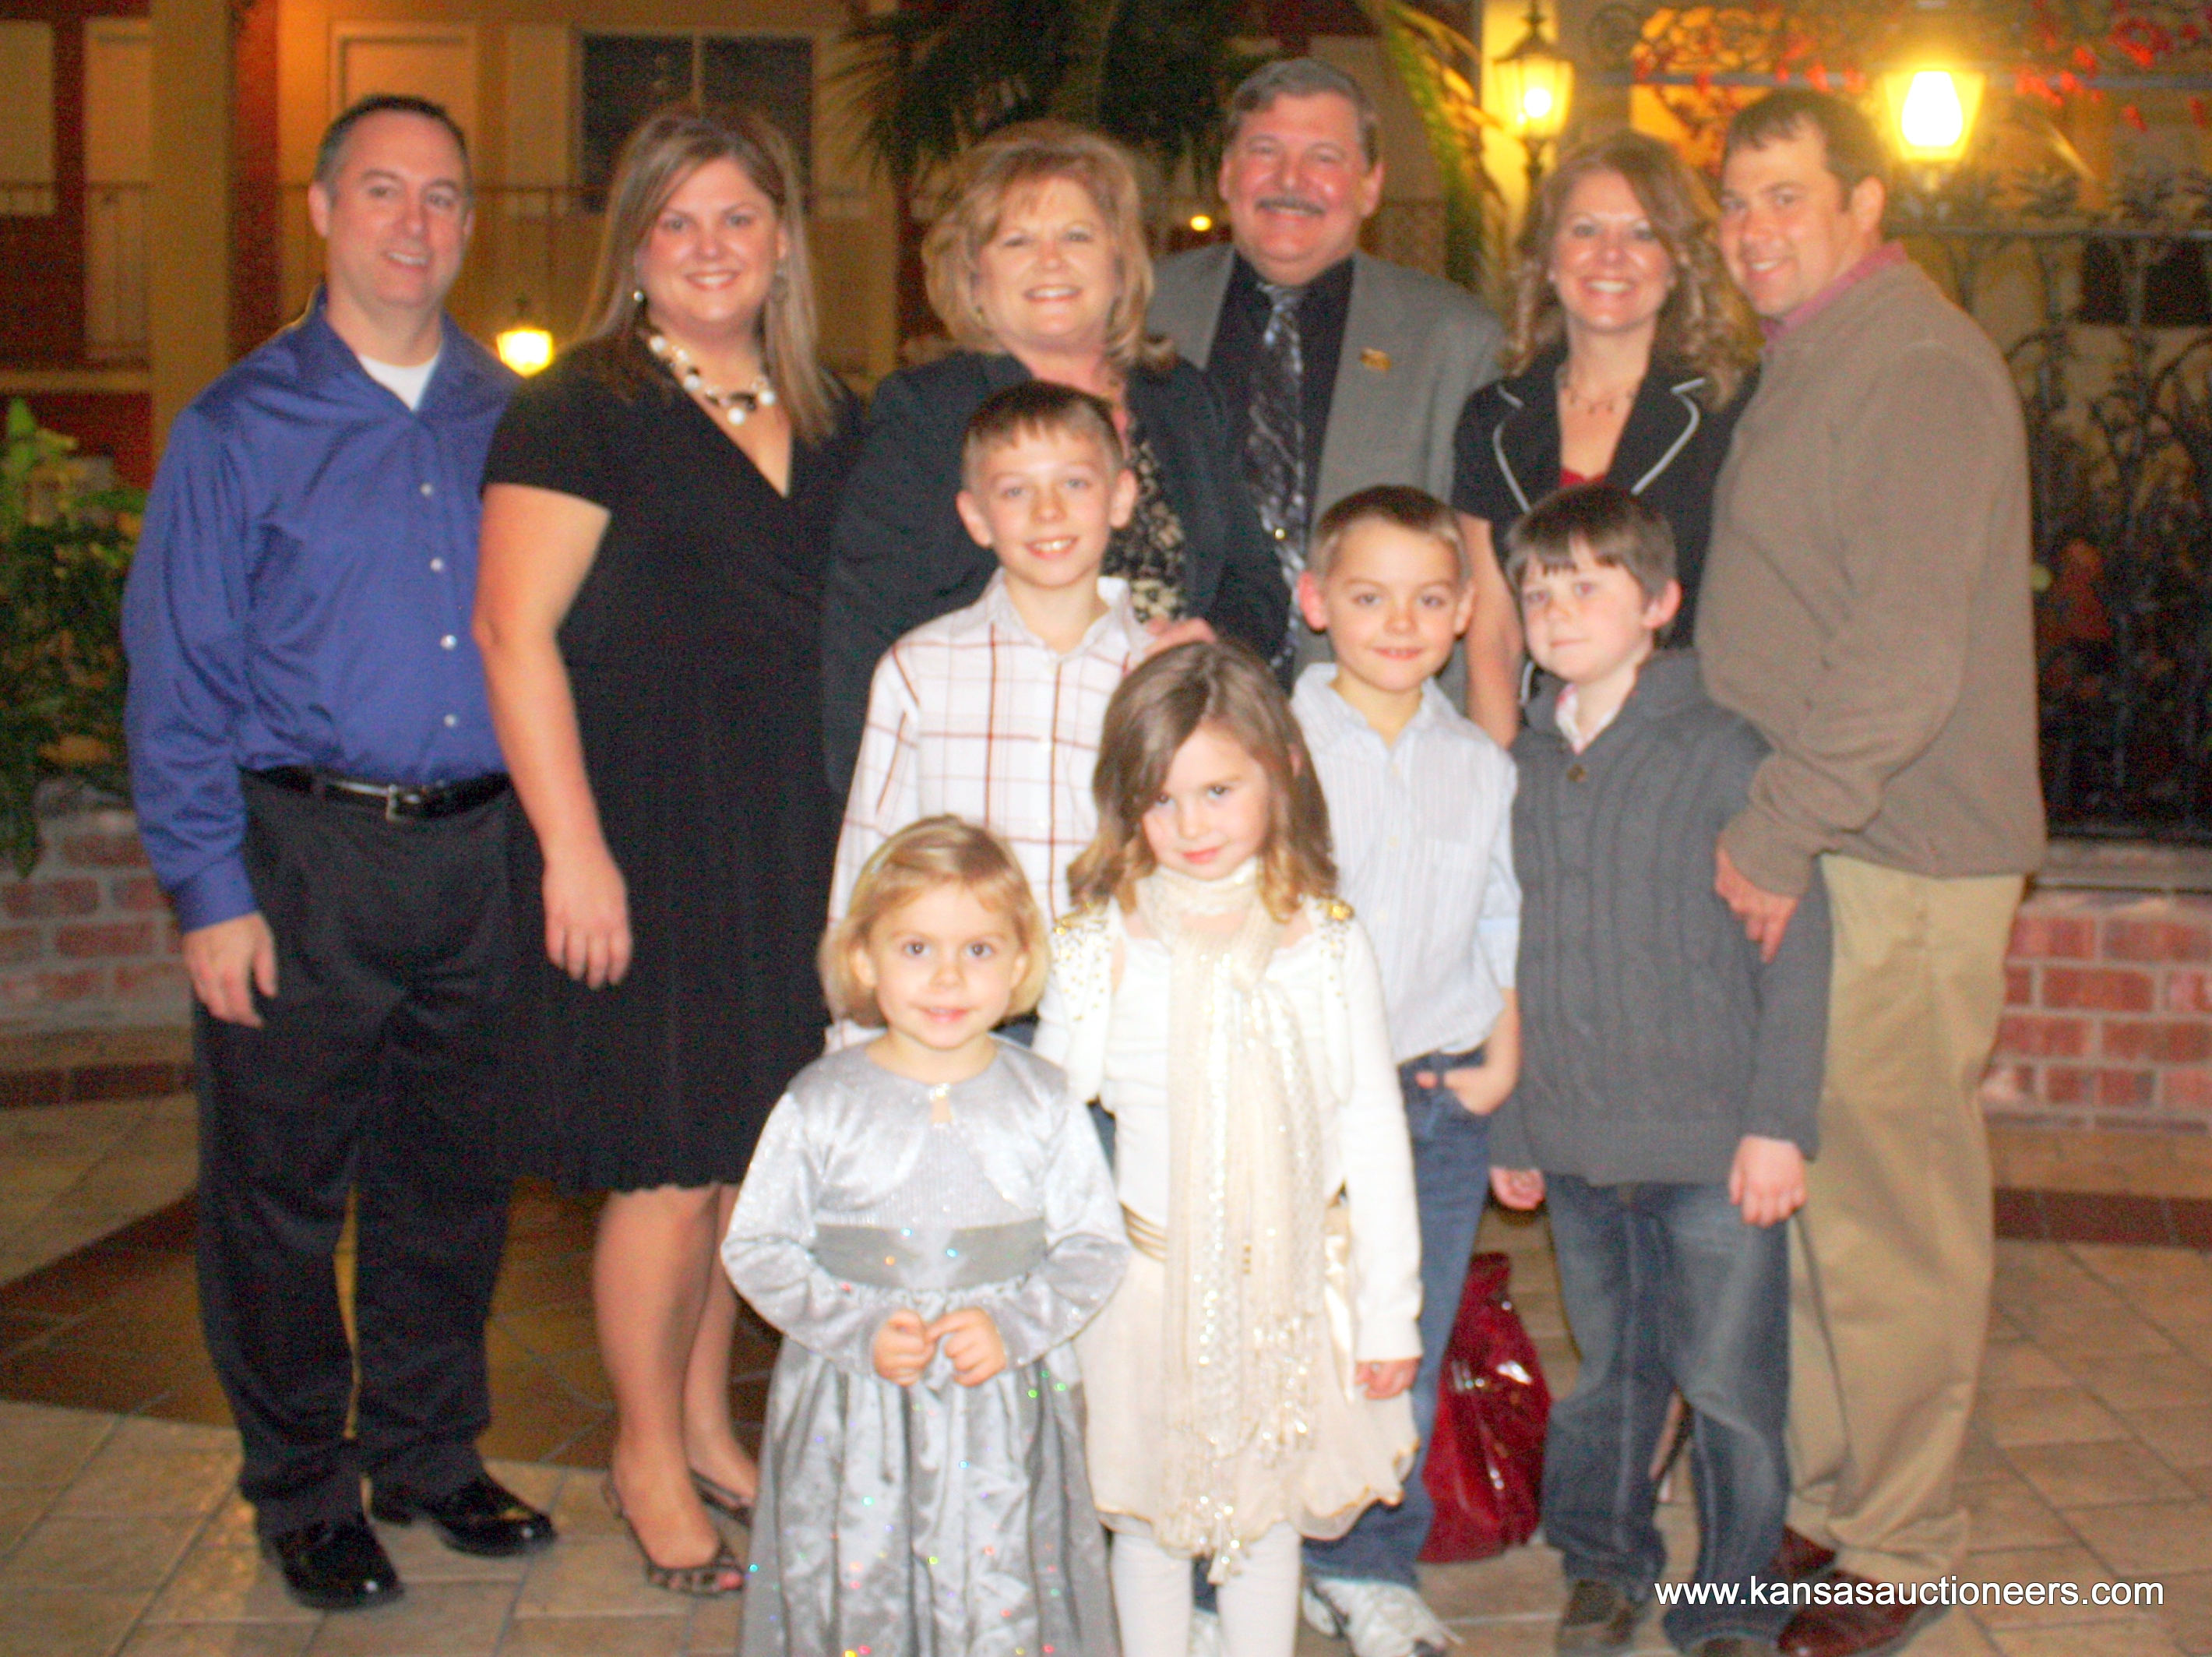 Wayne Pagel – Hall of Fame Inductee and family